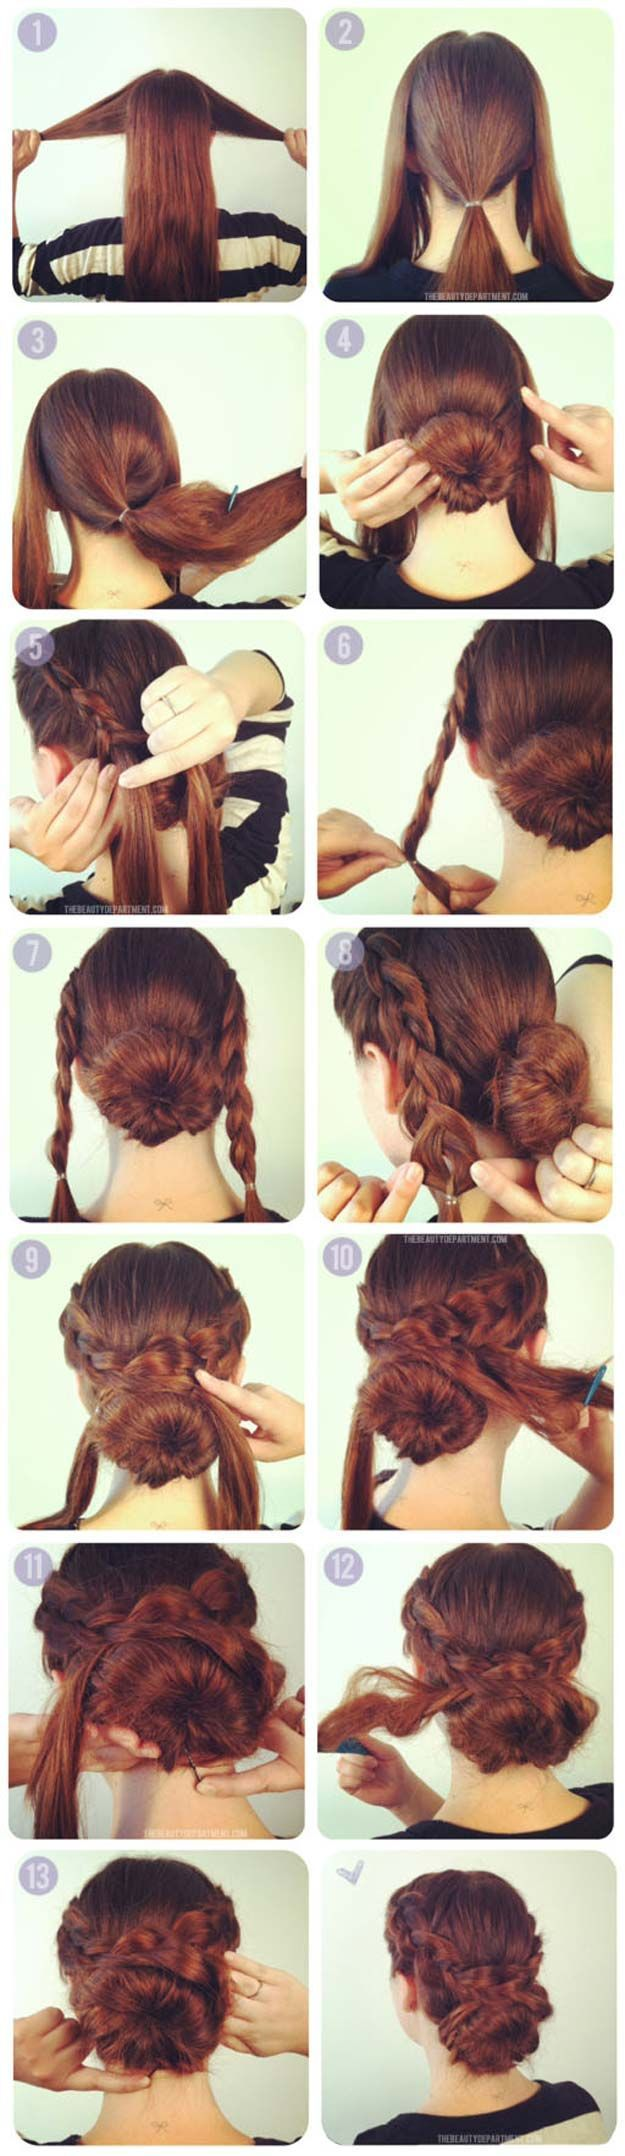 12 beautiful & fashionable stepstep hairstyle tutorials | hair